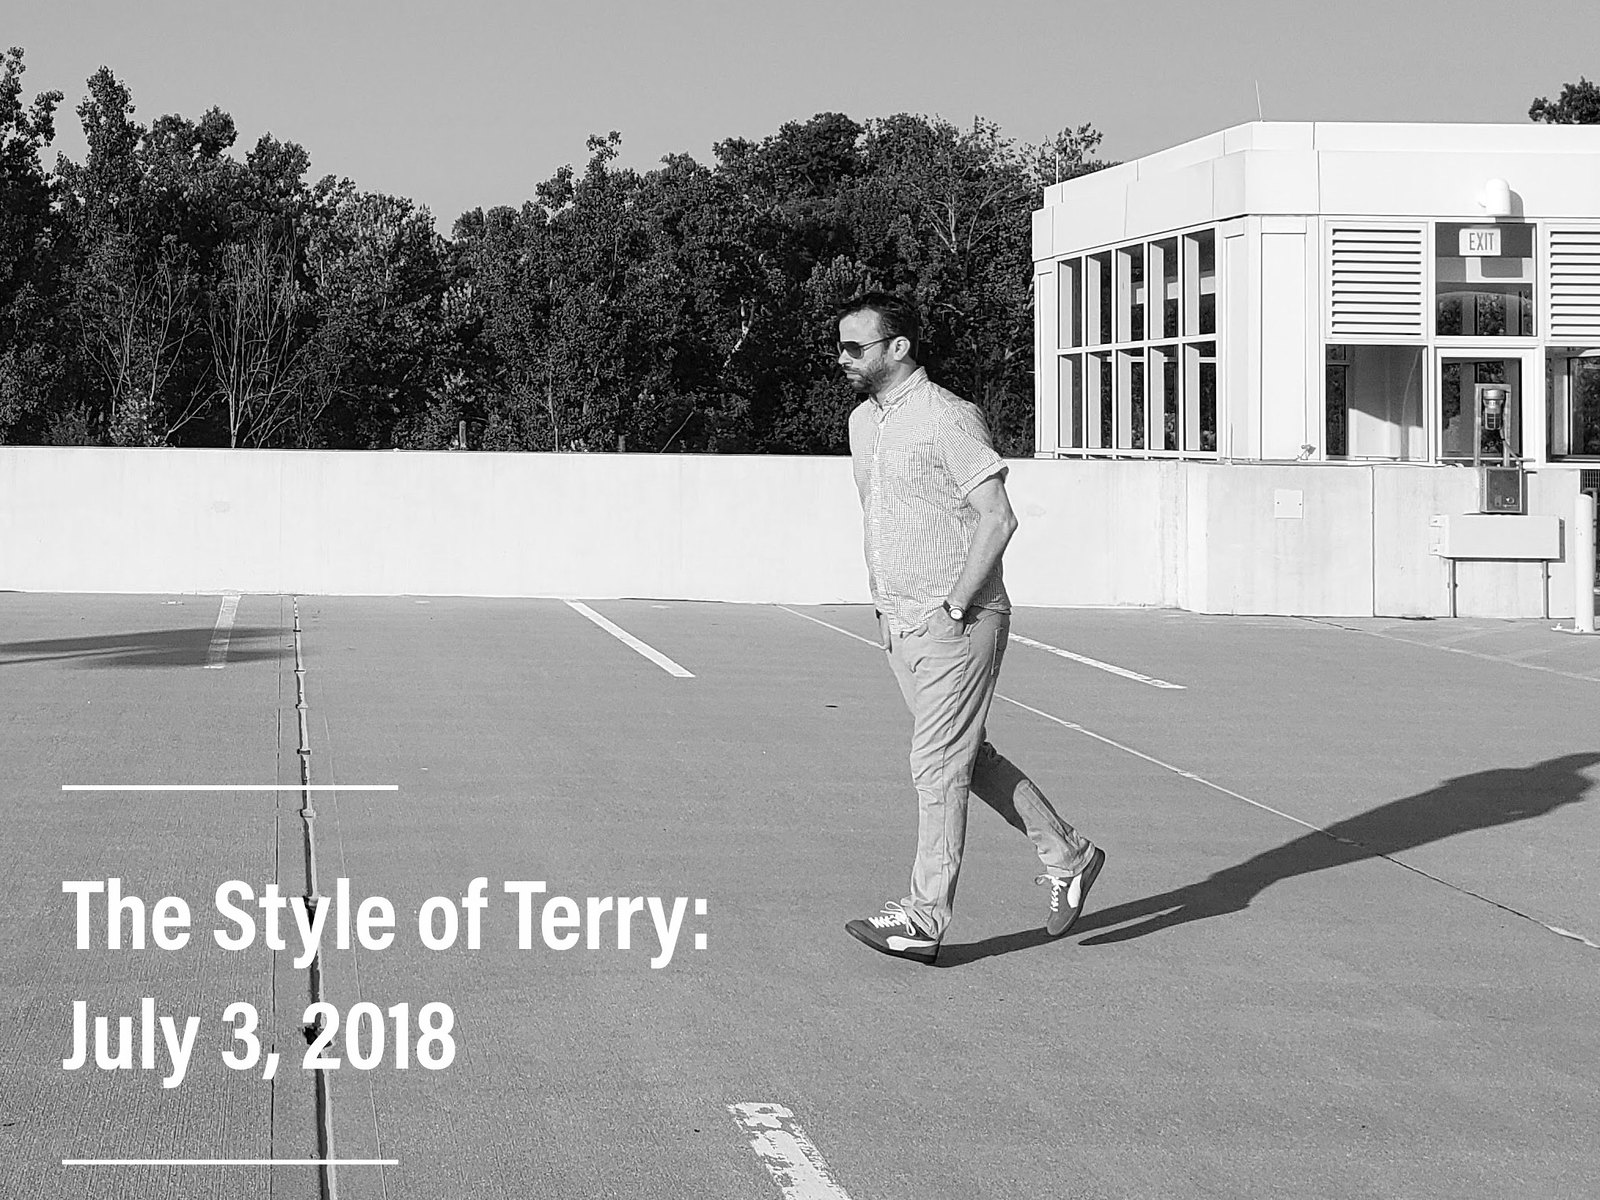 The Style of Terry: 7.3.18